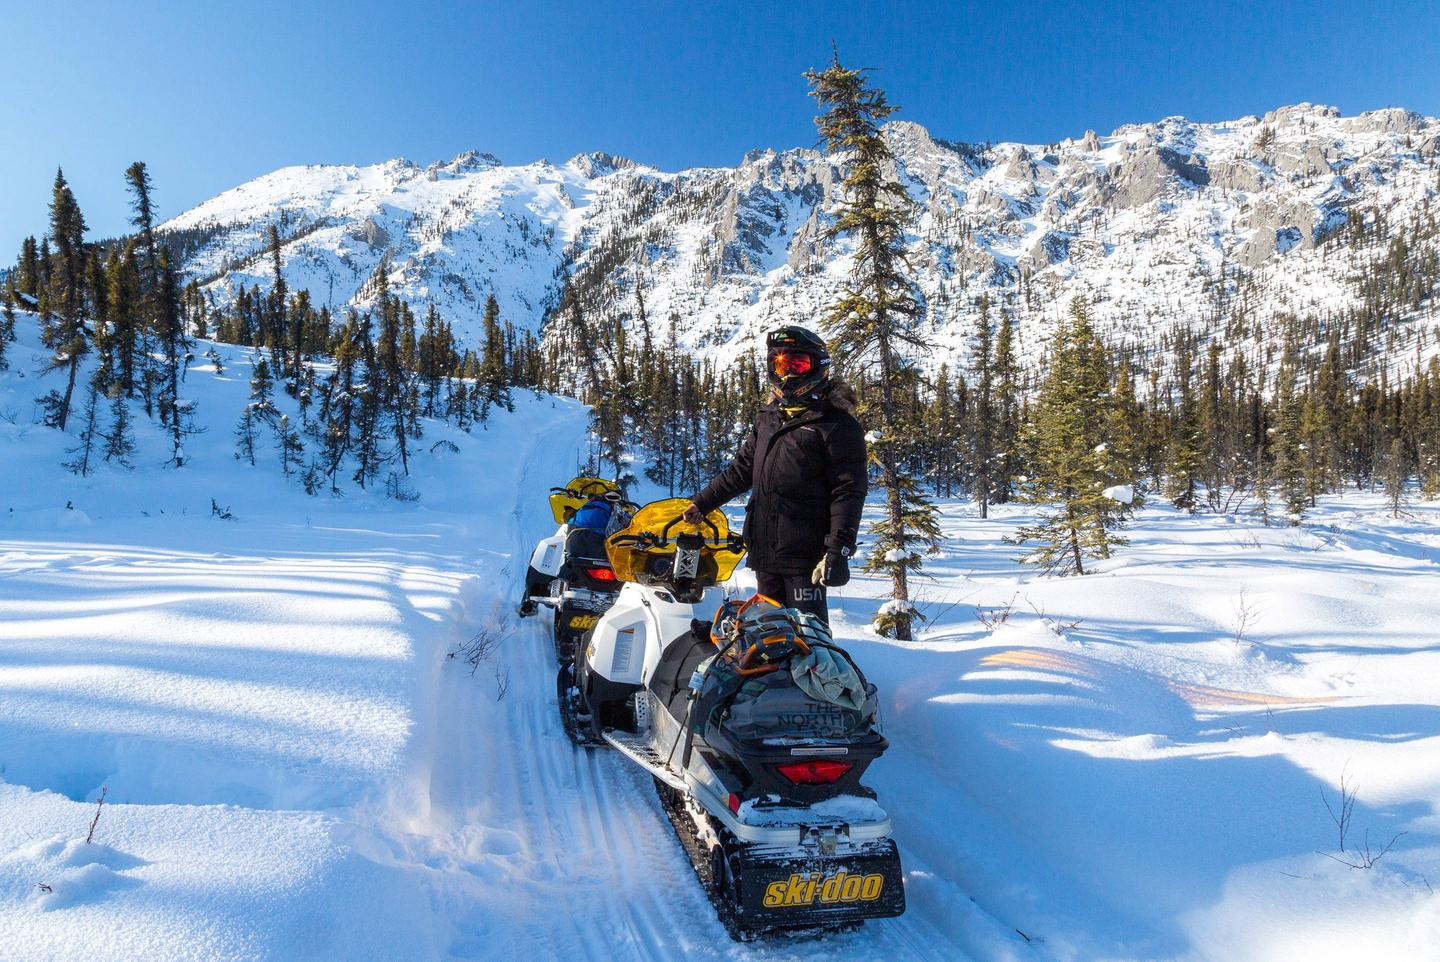 A man stands next to two snowmobiles in front of a rocky ridge.A snowmachine rider stops to enjoy the scenery along the Fossil Creek Trail in the White Mountains National Recreation Area.